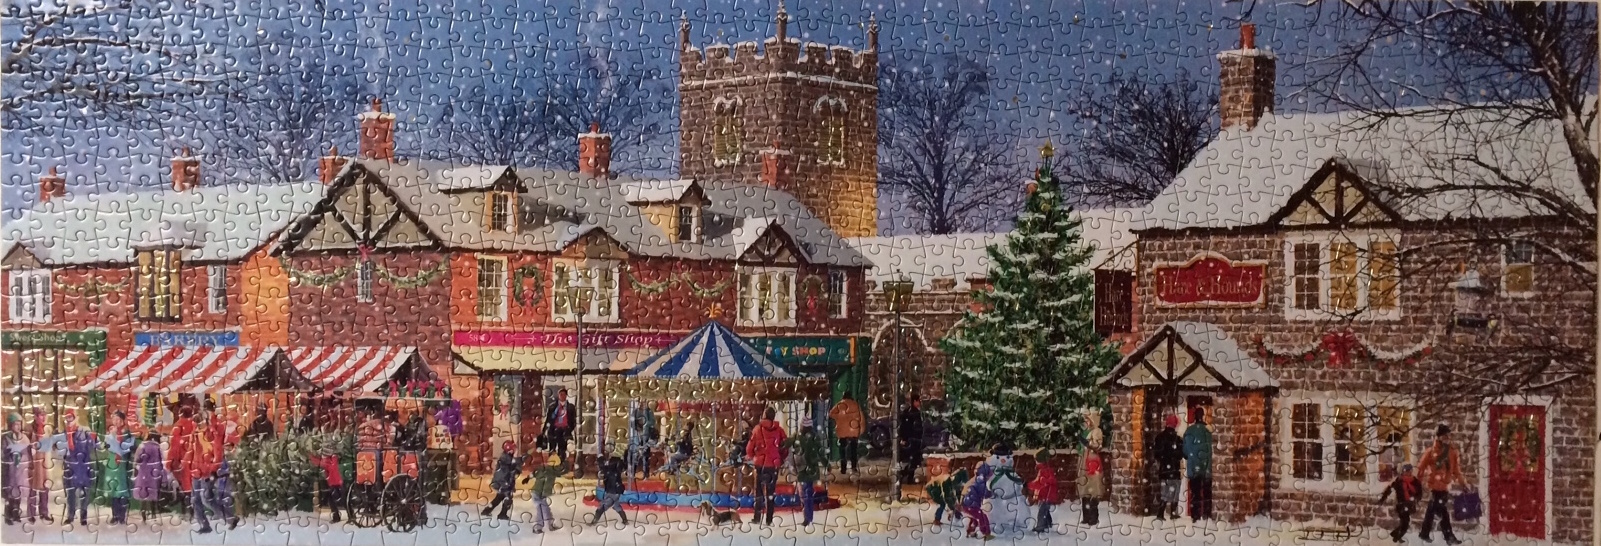 Christmas-town-jigsaw-puzzle